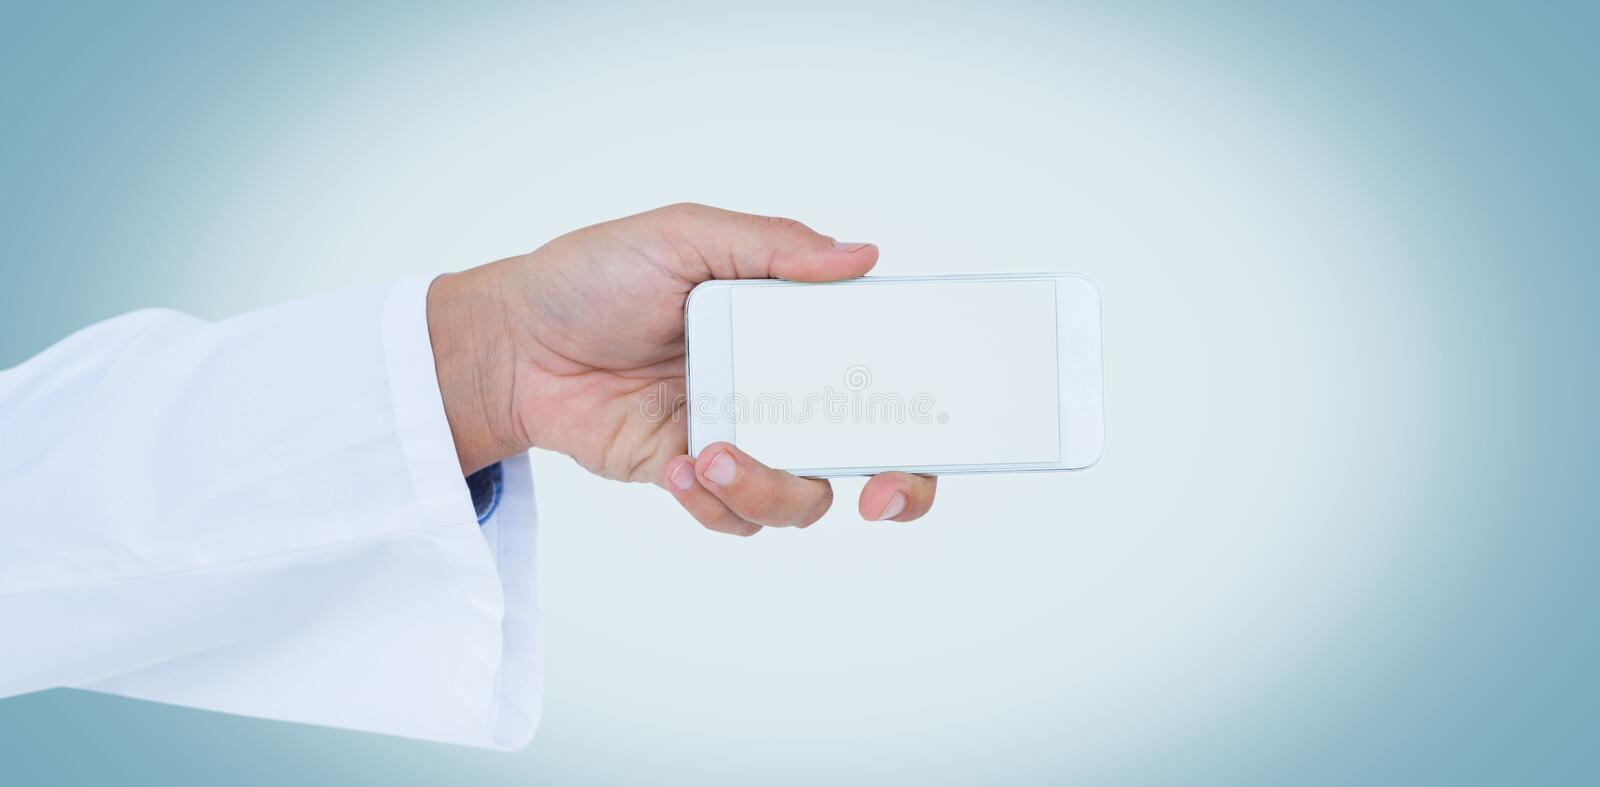 Male doctor holding smart phone with blank screen. Cropped image of male doctor holding smart phone with blank screen against white background royalty free stock photography